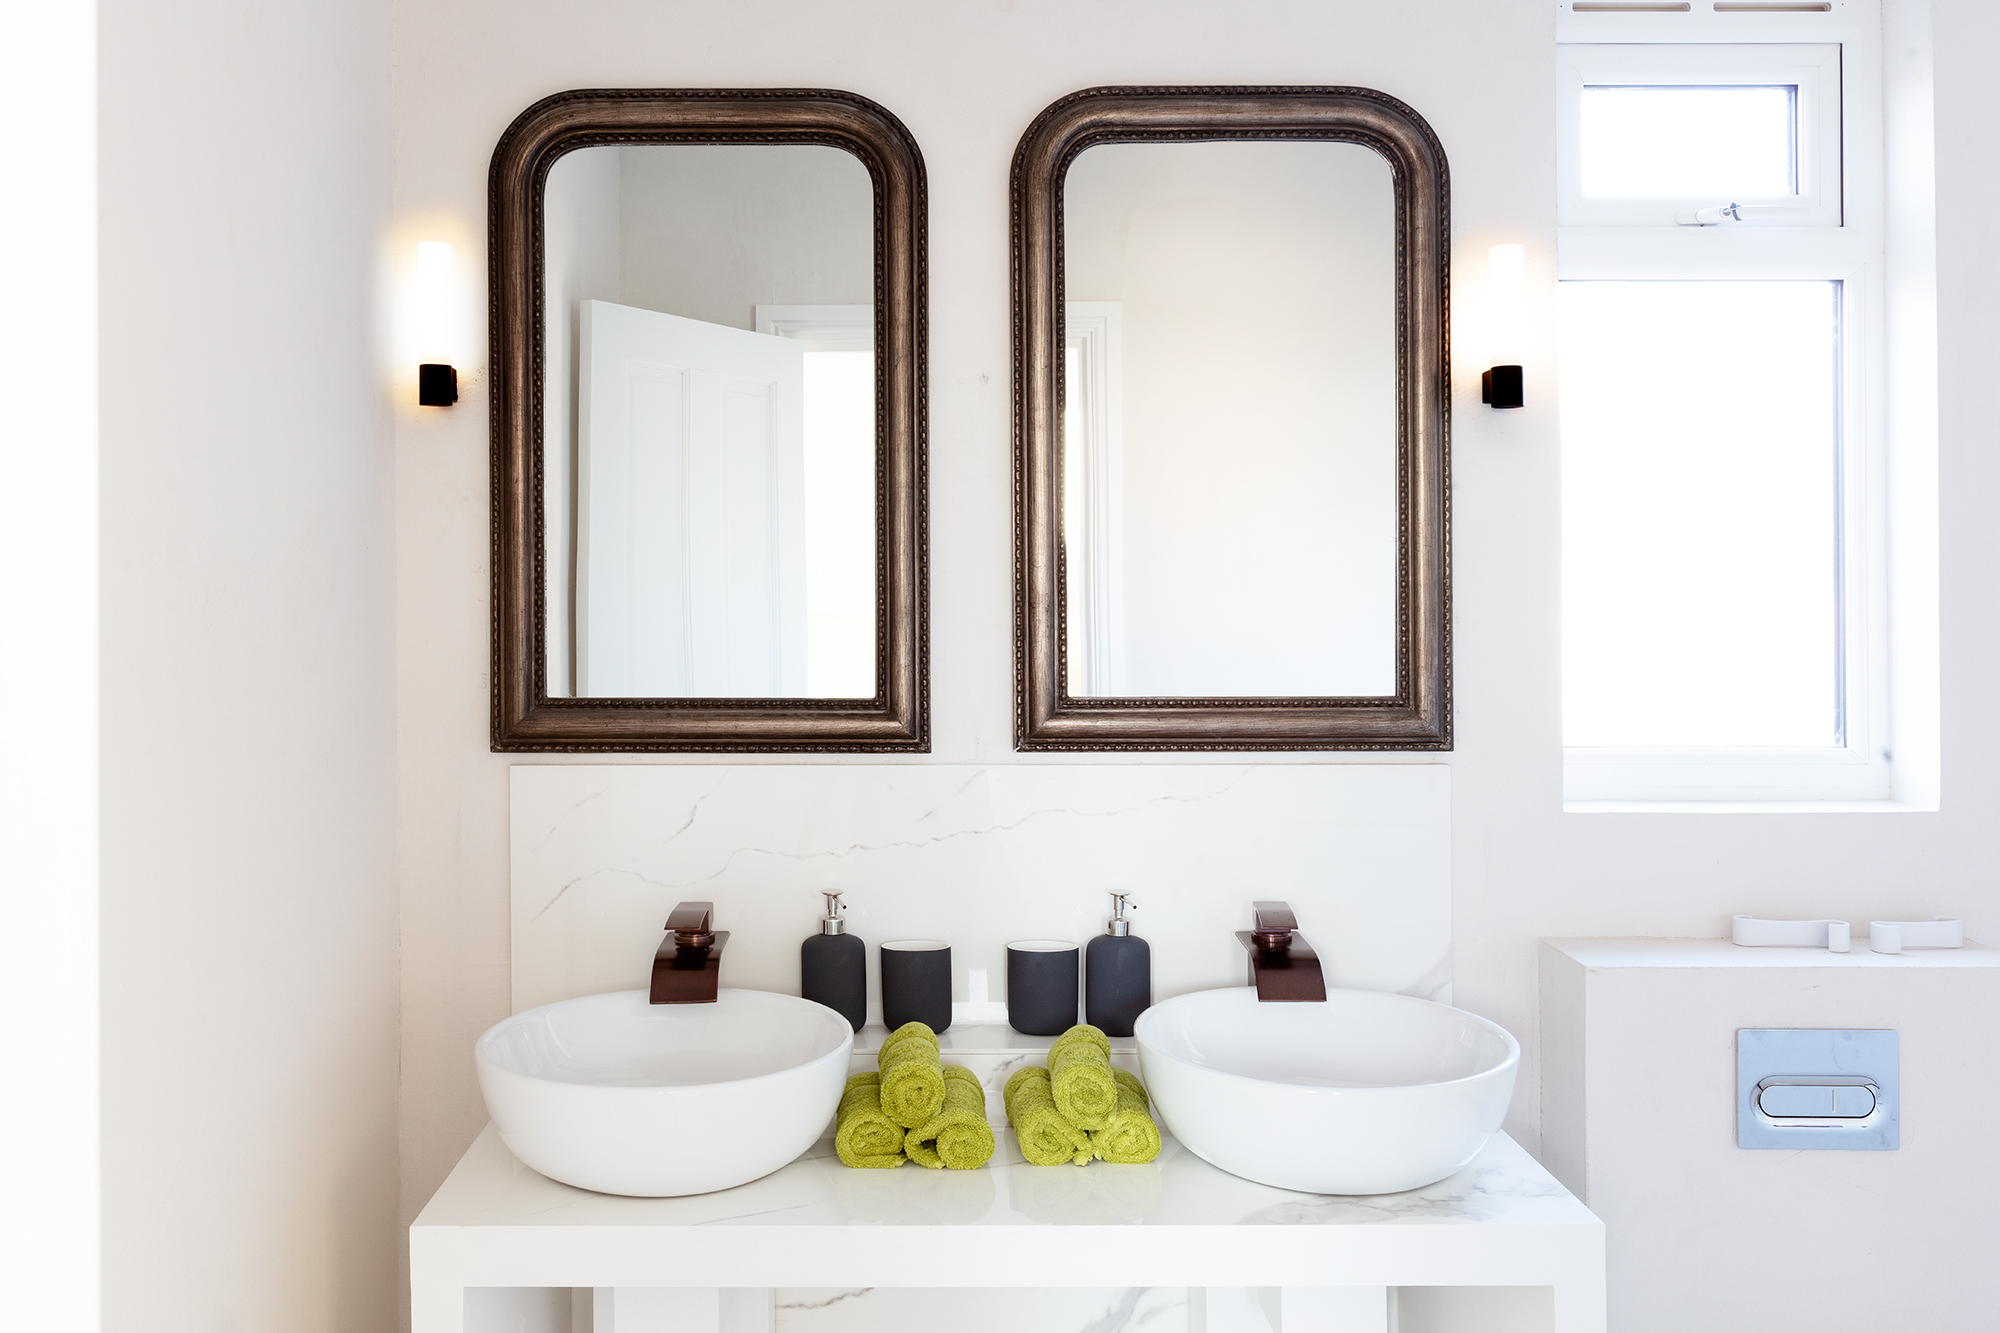 Surbiton Master Bathroom